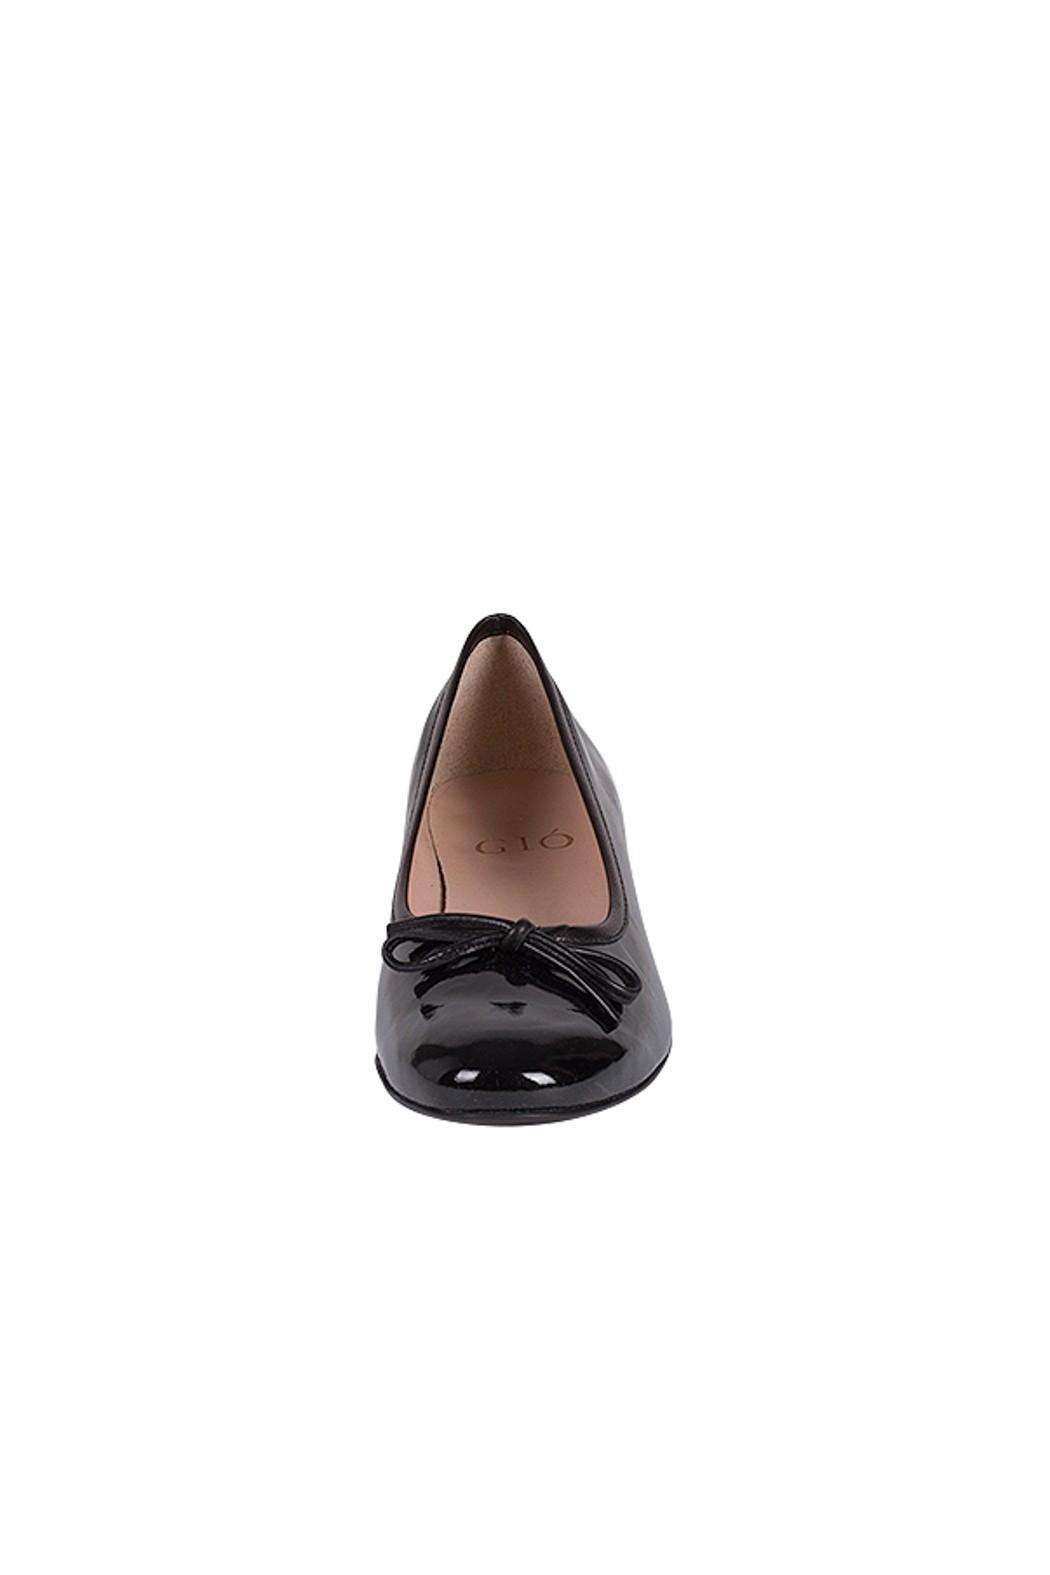 Pascucci Black Patent-Leather Ballerina - Side Cropped Image